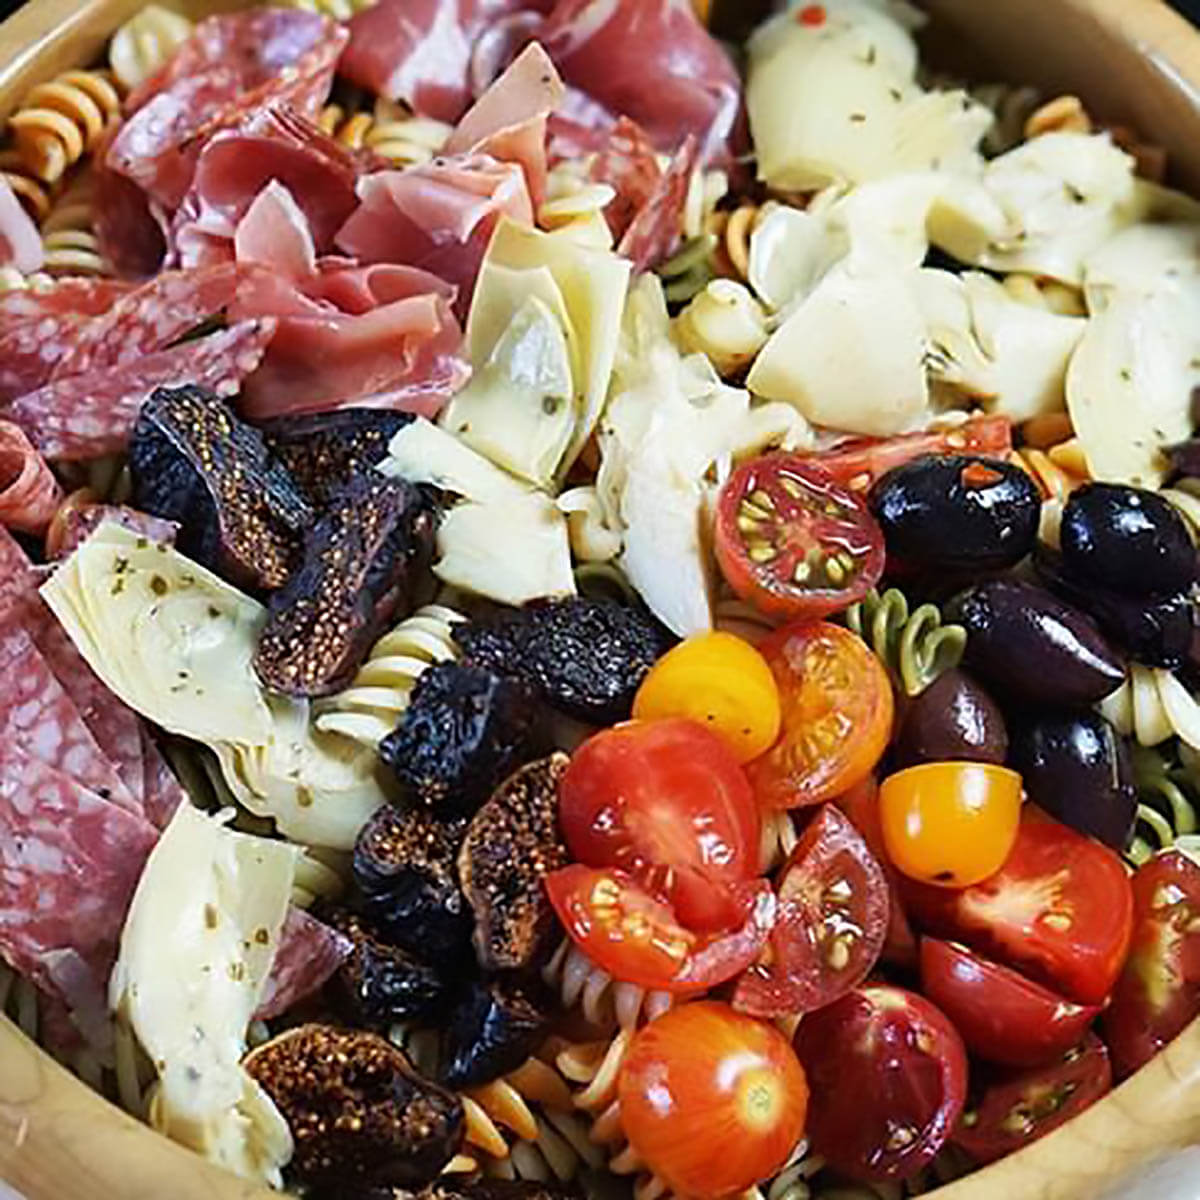 Anitpasto Pasta salad with salamini, artichokes, cheese, olives and tomatoes.